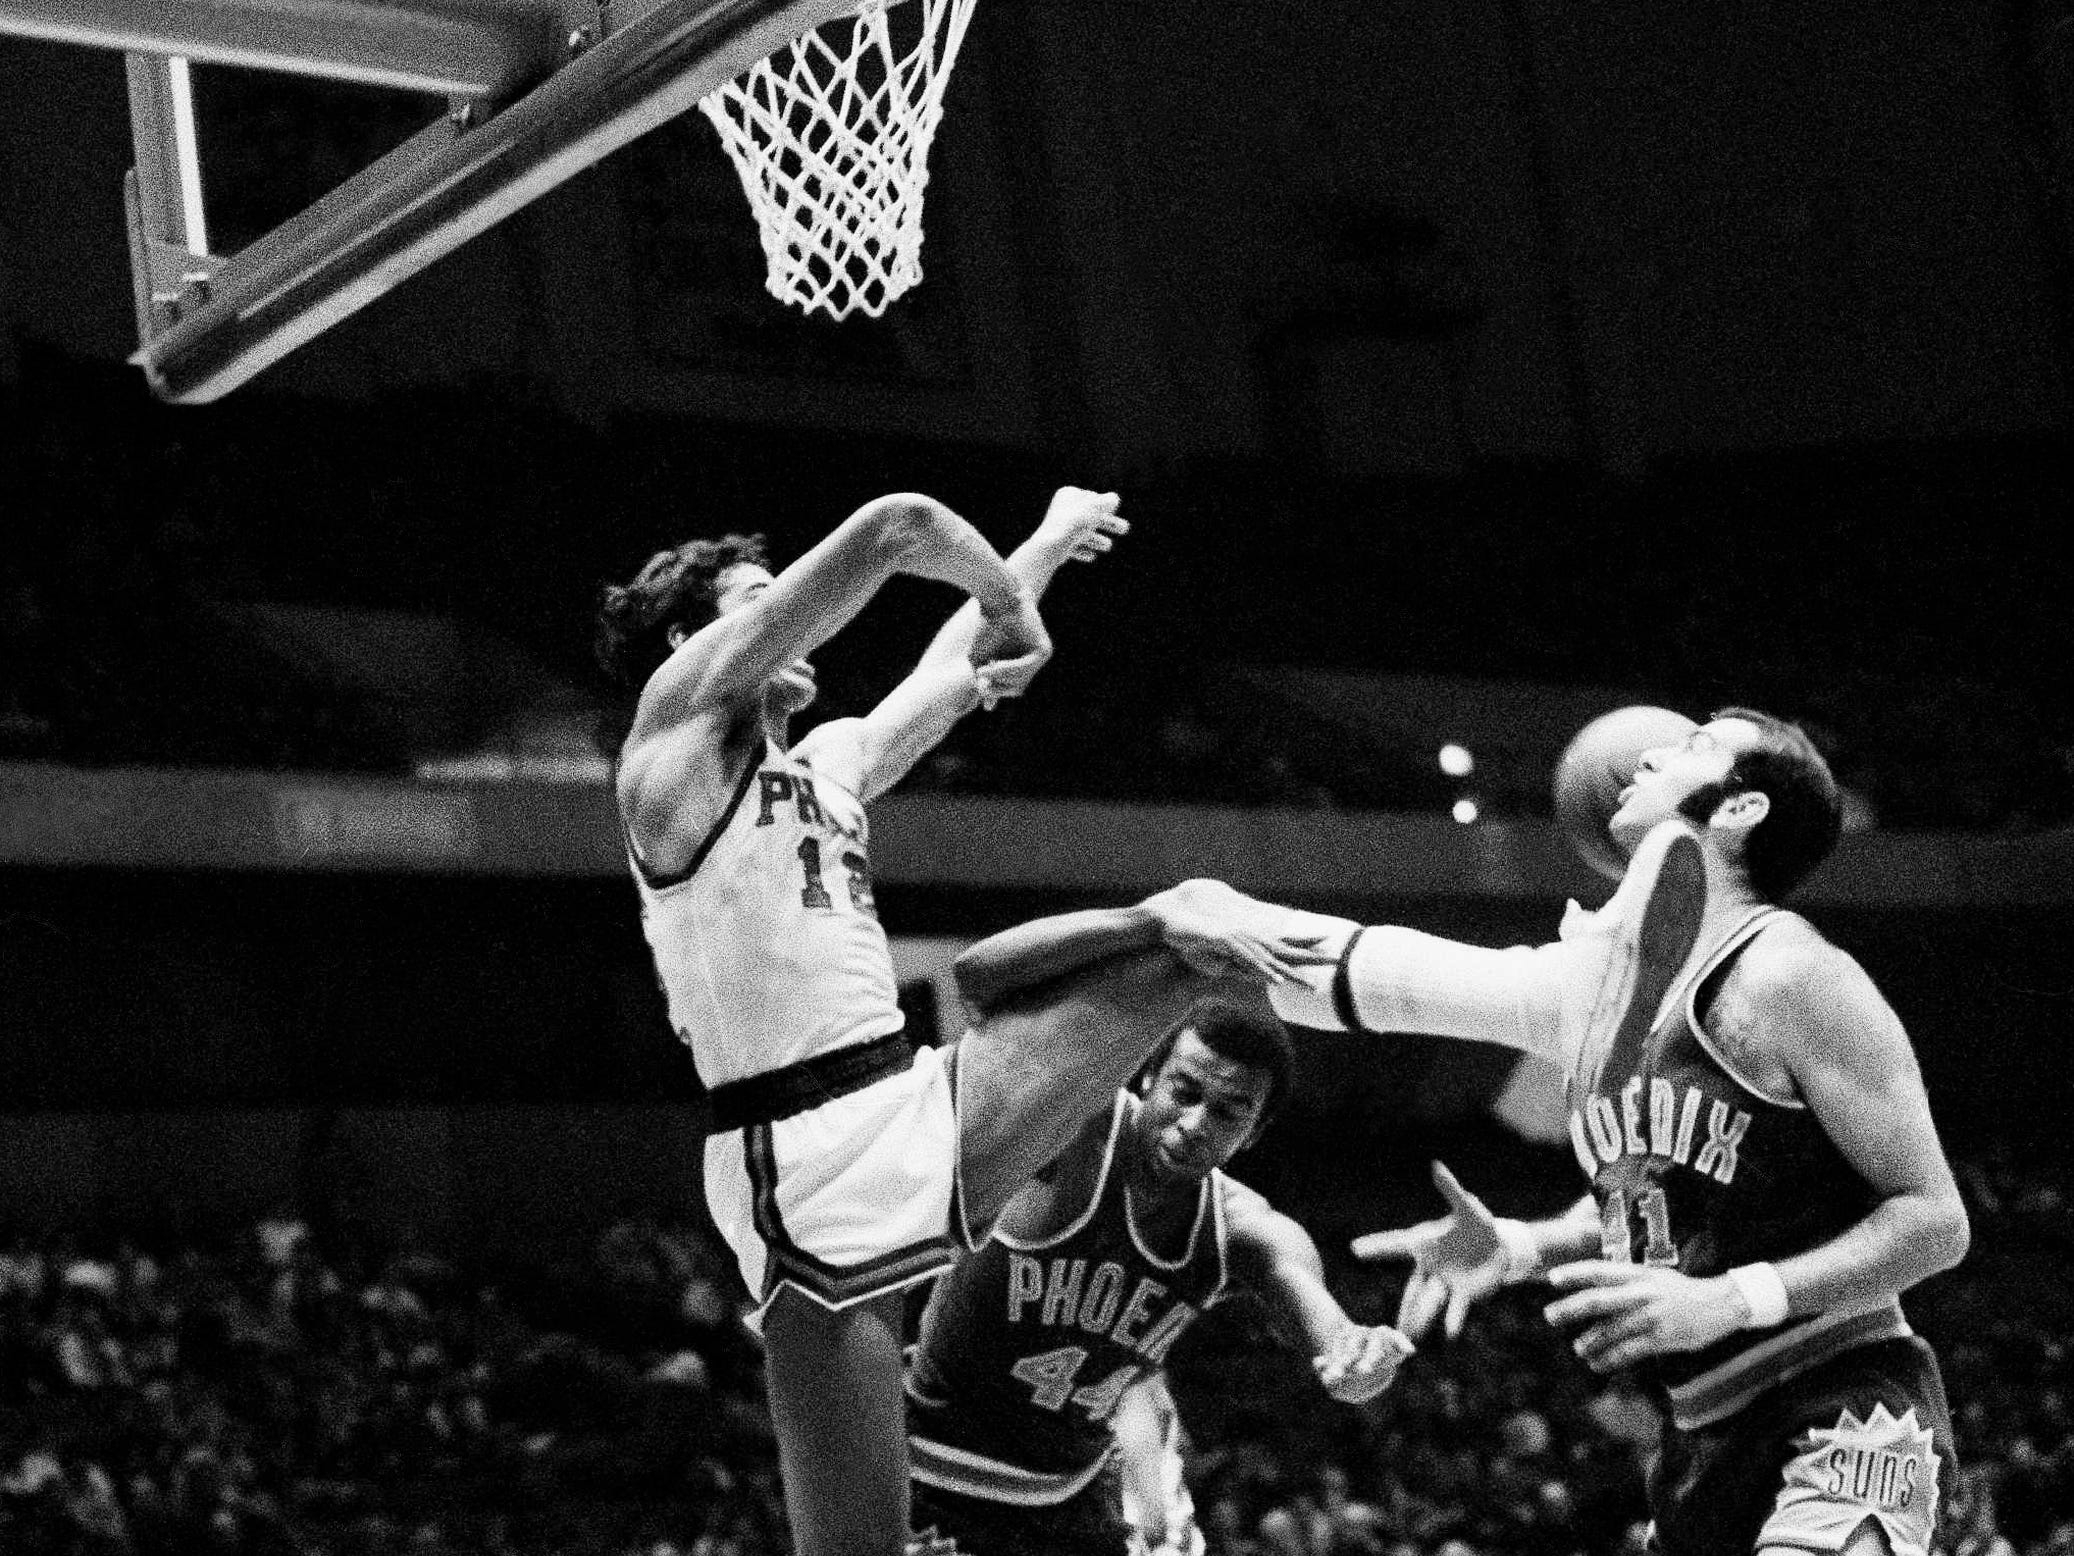 1973-74 | Suns MVP: Neal Walk (41, seen in 1970). Scott continued to light it up, but Walk gets the nod in his final season in the desert. Walk averaged a double-double for his second consecutive season. Not bad for a guy who had to play his career in the shadow of Kareem Abdul-Jabbar.